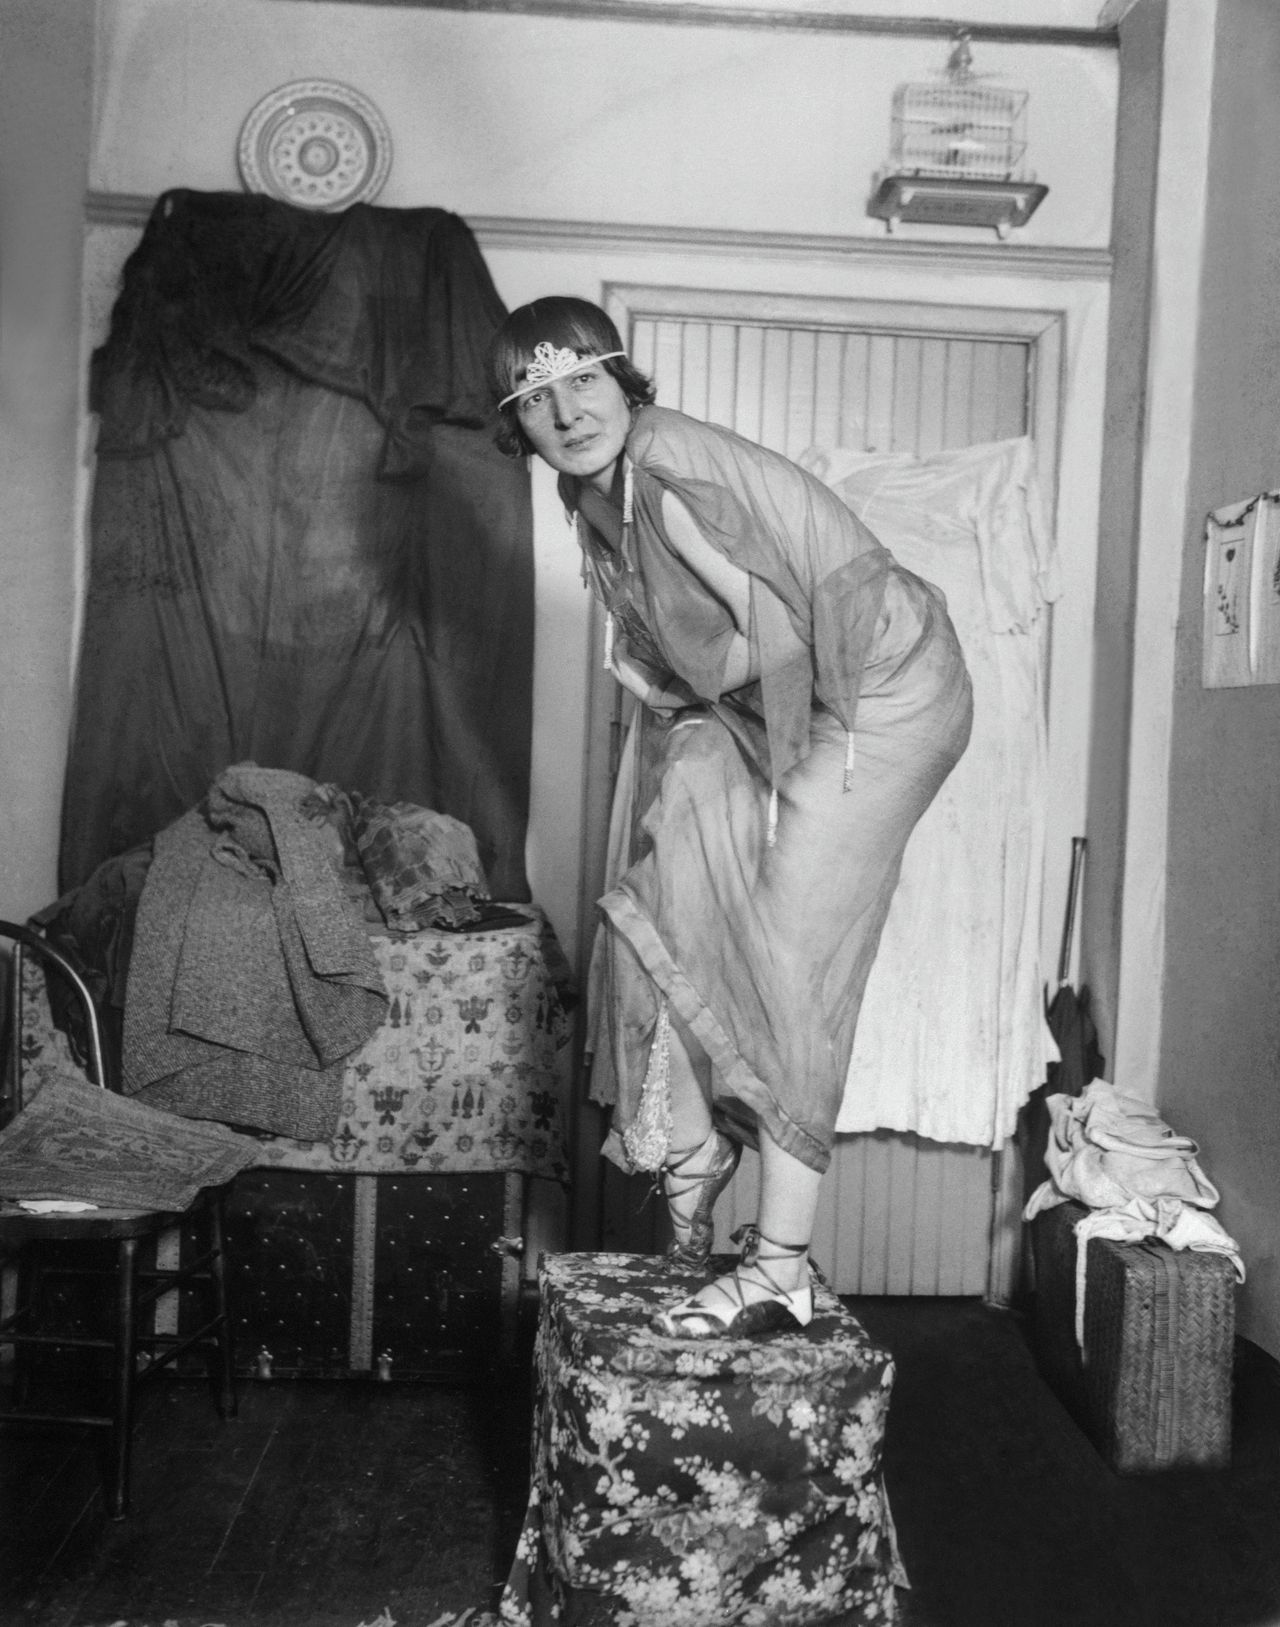 Elsa von Freytag-Loringhoven, Dada artist and Marcel Duchamp's friend, seen here posing as a model at the New York academy of art.